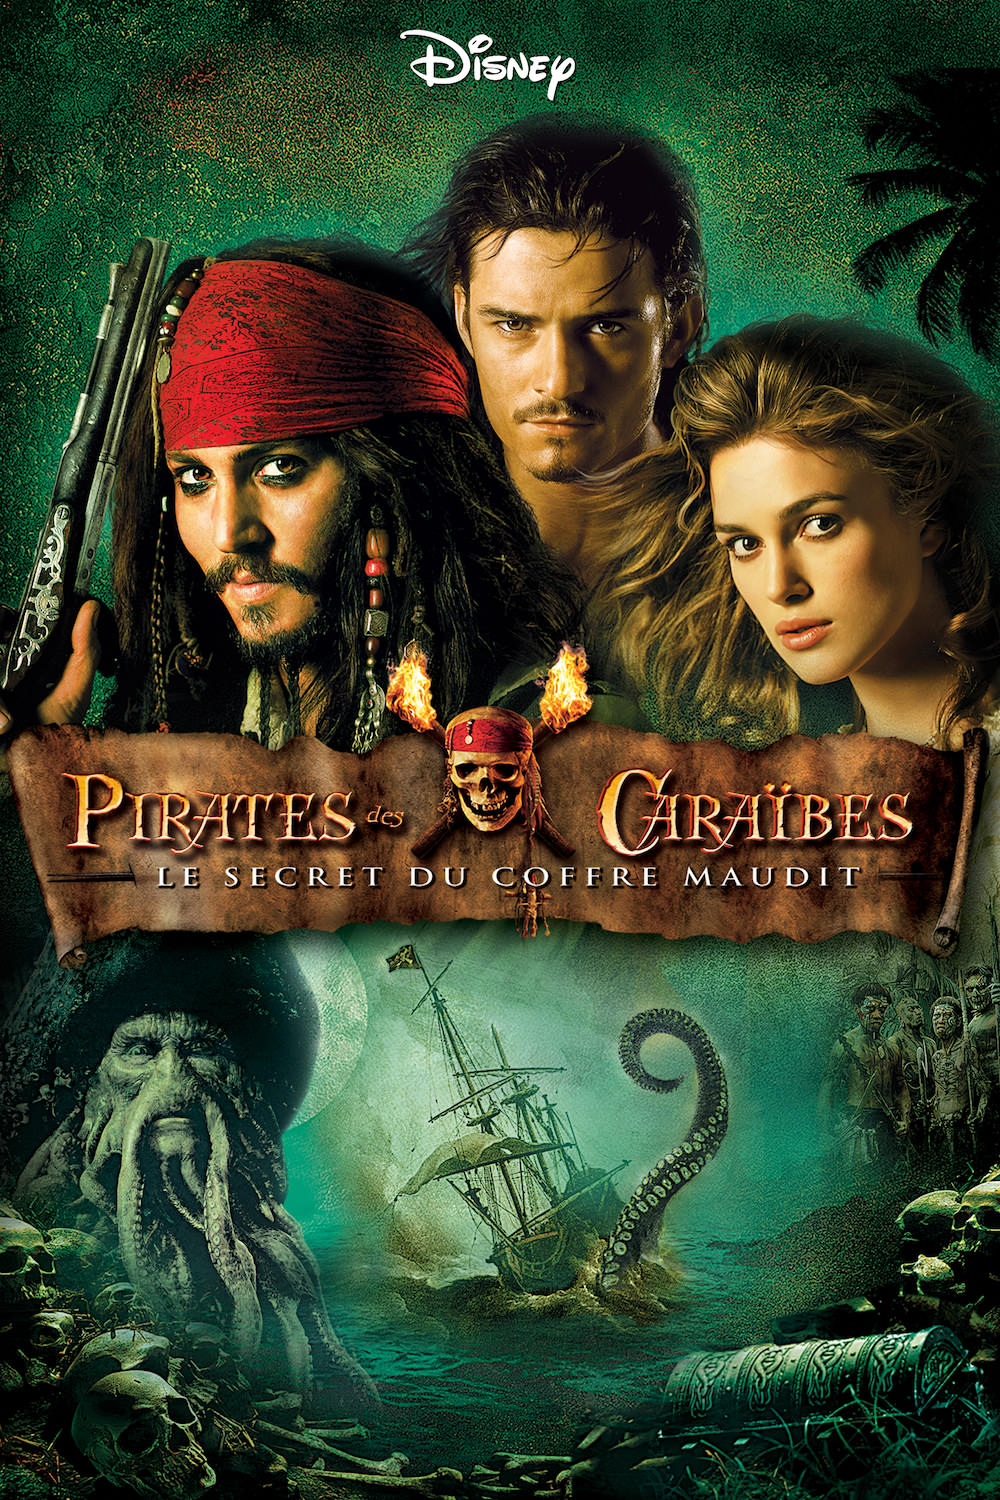 Affiche du film Pirates des Caraïbes  Le Secret du Coffre maudit